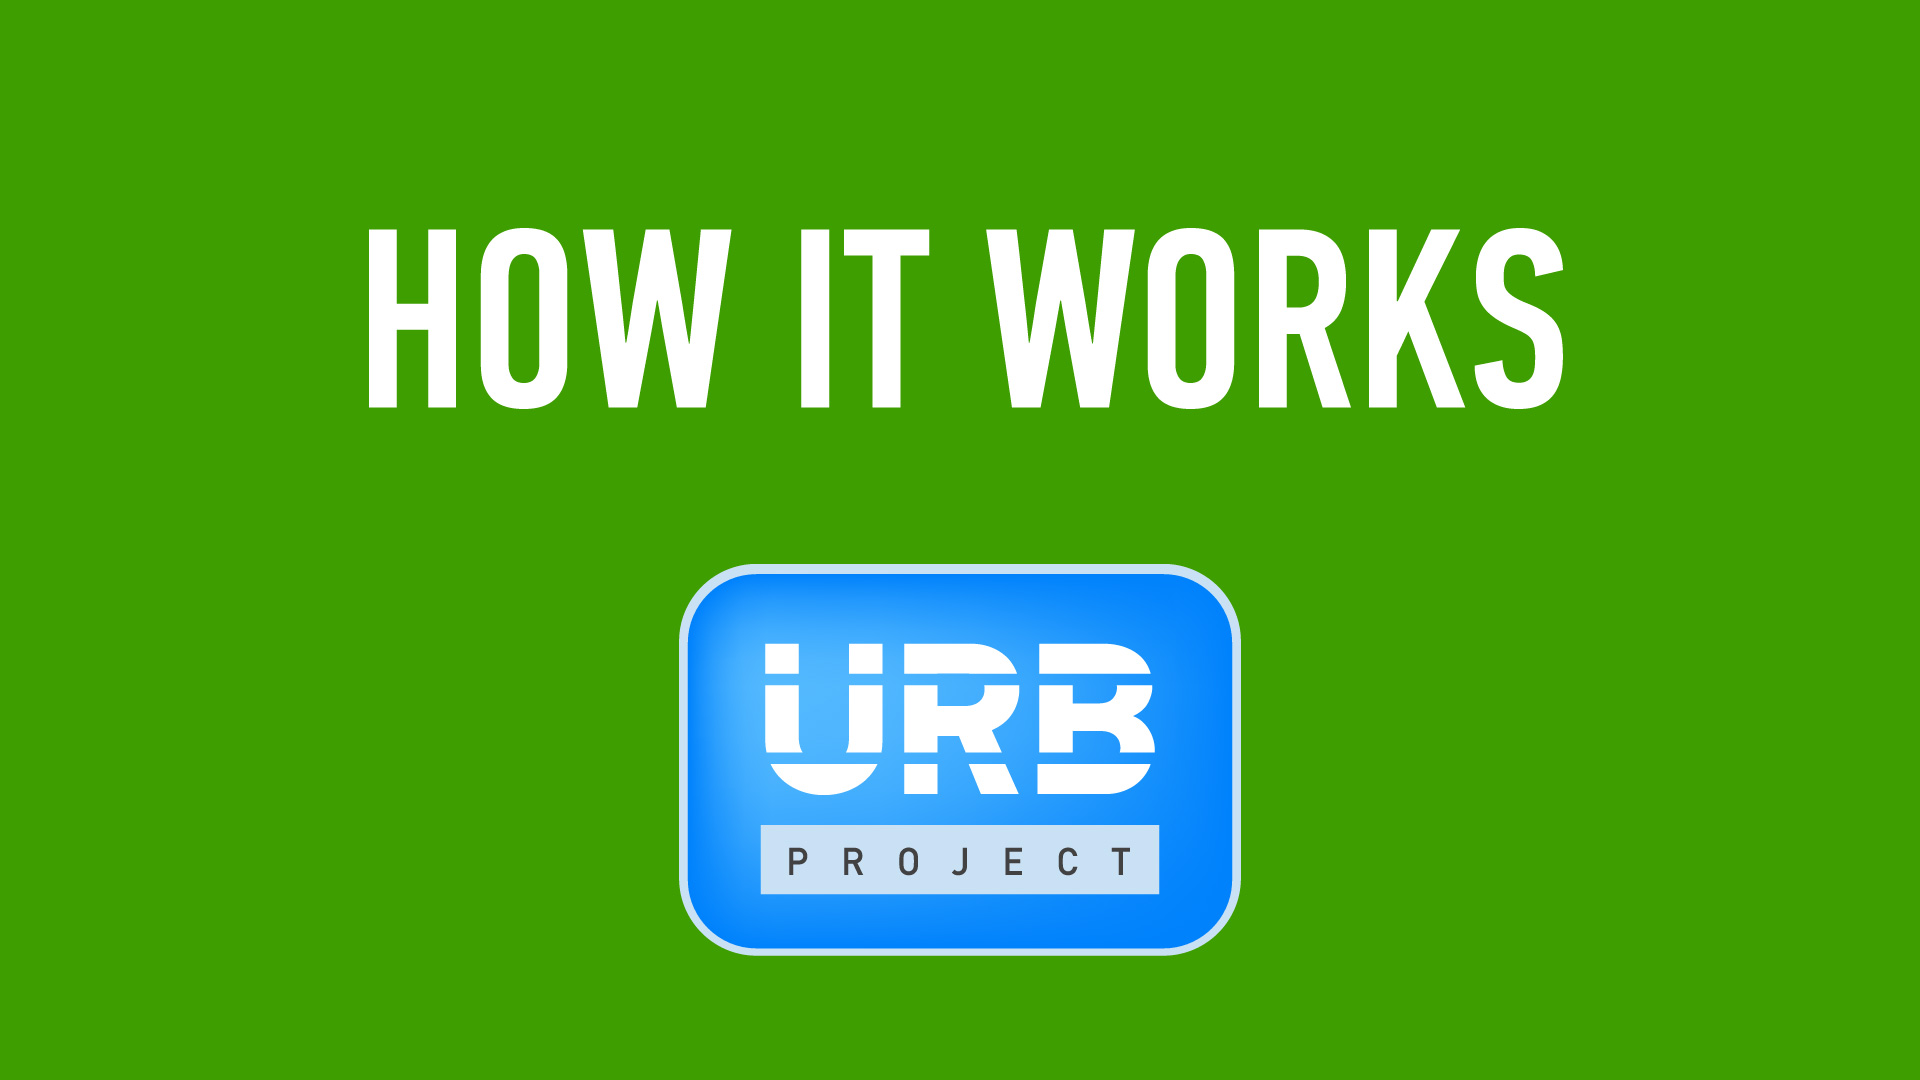 URB Project. How it works